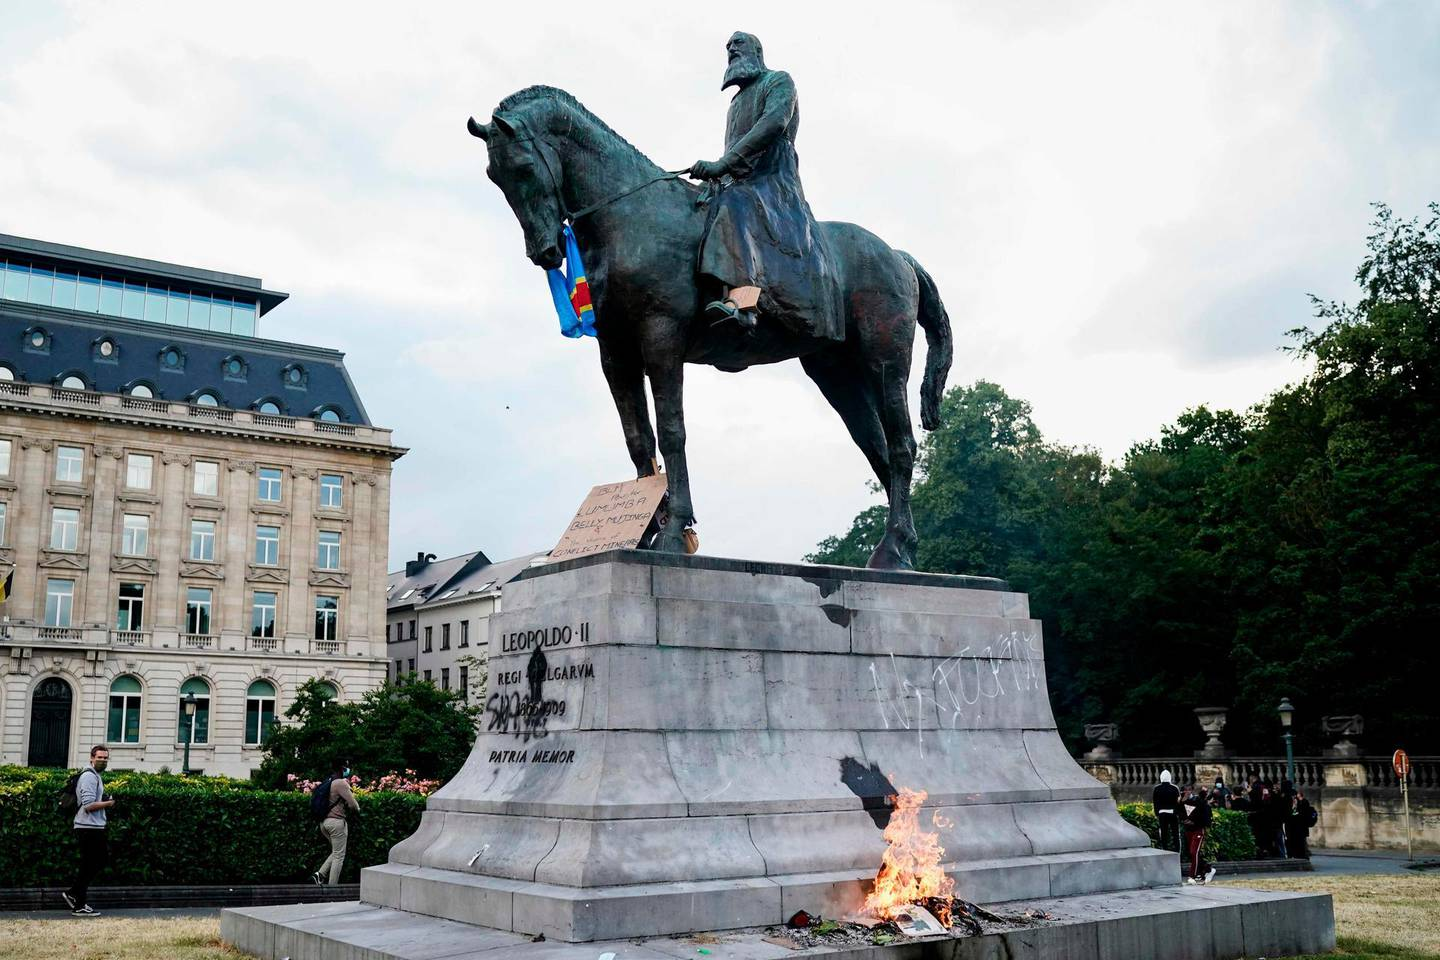 The King Leopold II of Belgium statue is pictured during an anti-racism protest, in Brussels, on June 7, 2020, as part of a weekend of 'Black Lives Matter' worldwide protests against racism and police brutality in the wake of the death of George Floyd, an unarmed black man killed while apprehended by police in Minneapolis, US.   / AFP / Kenzo TRIBOUILLARD